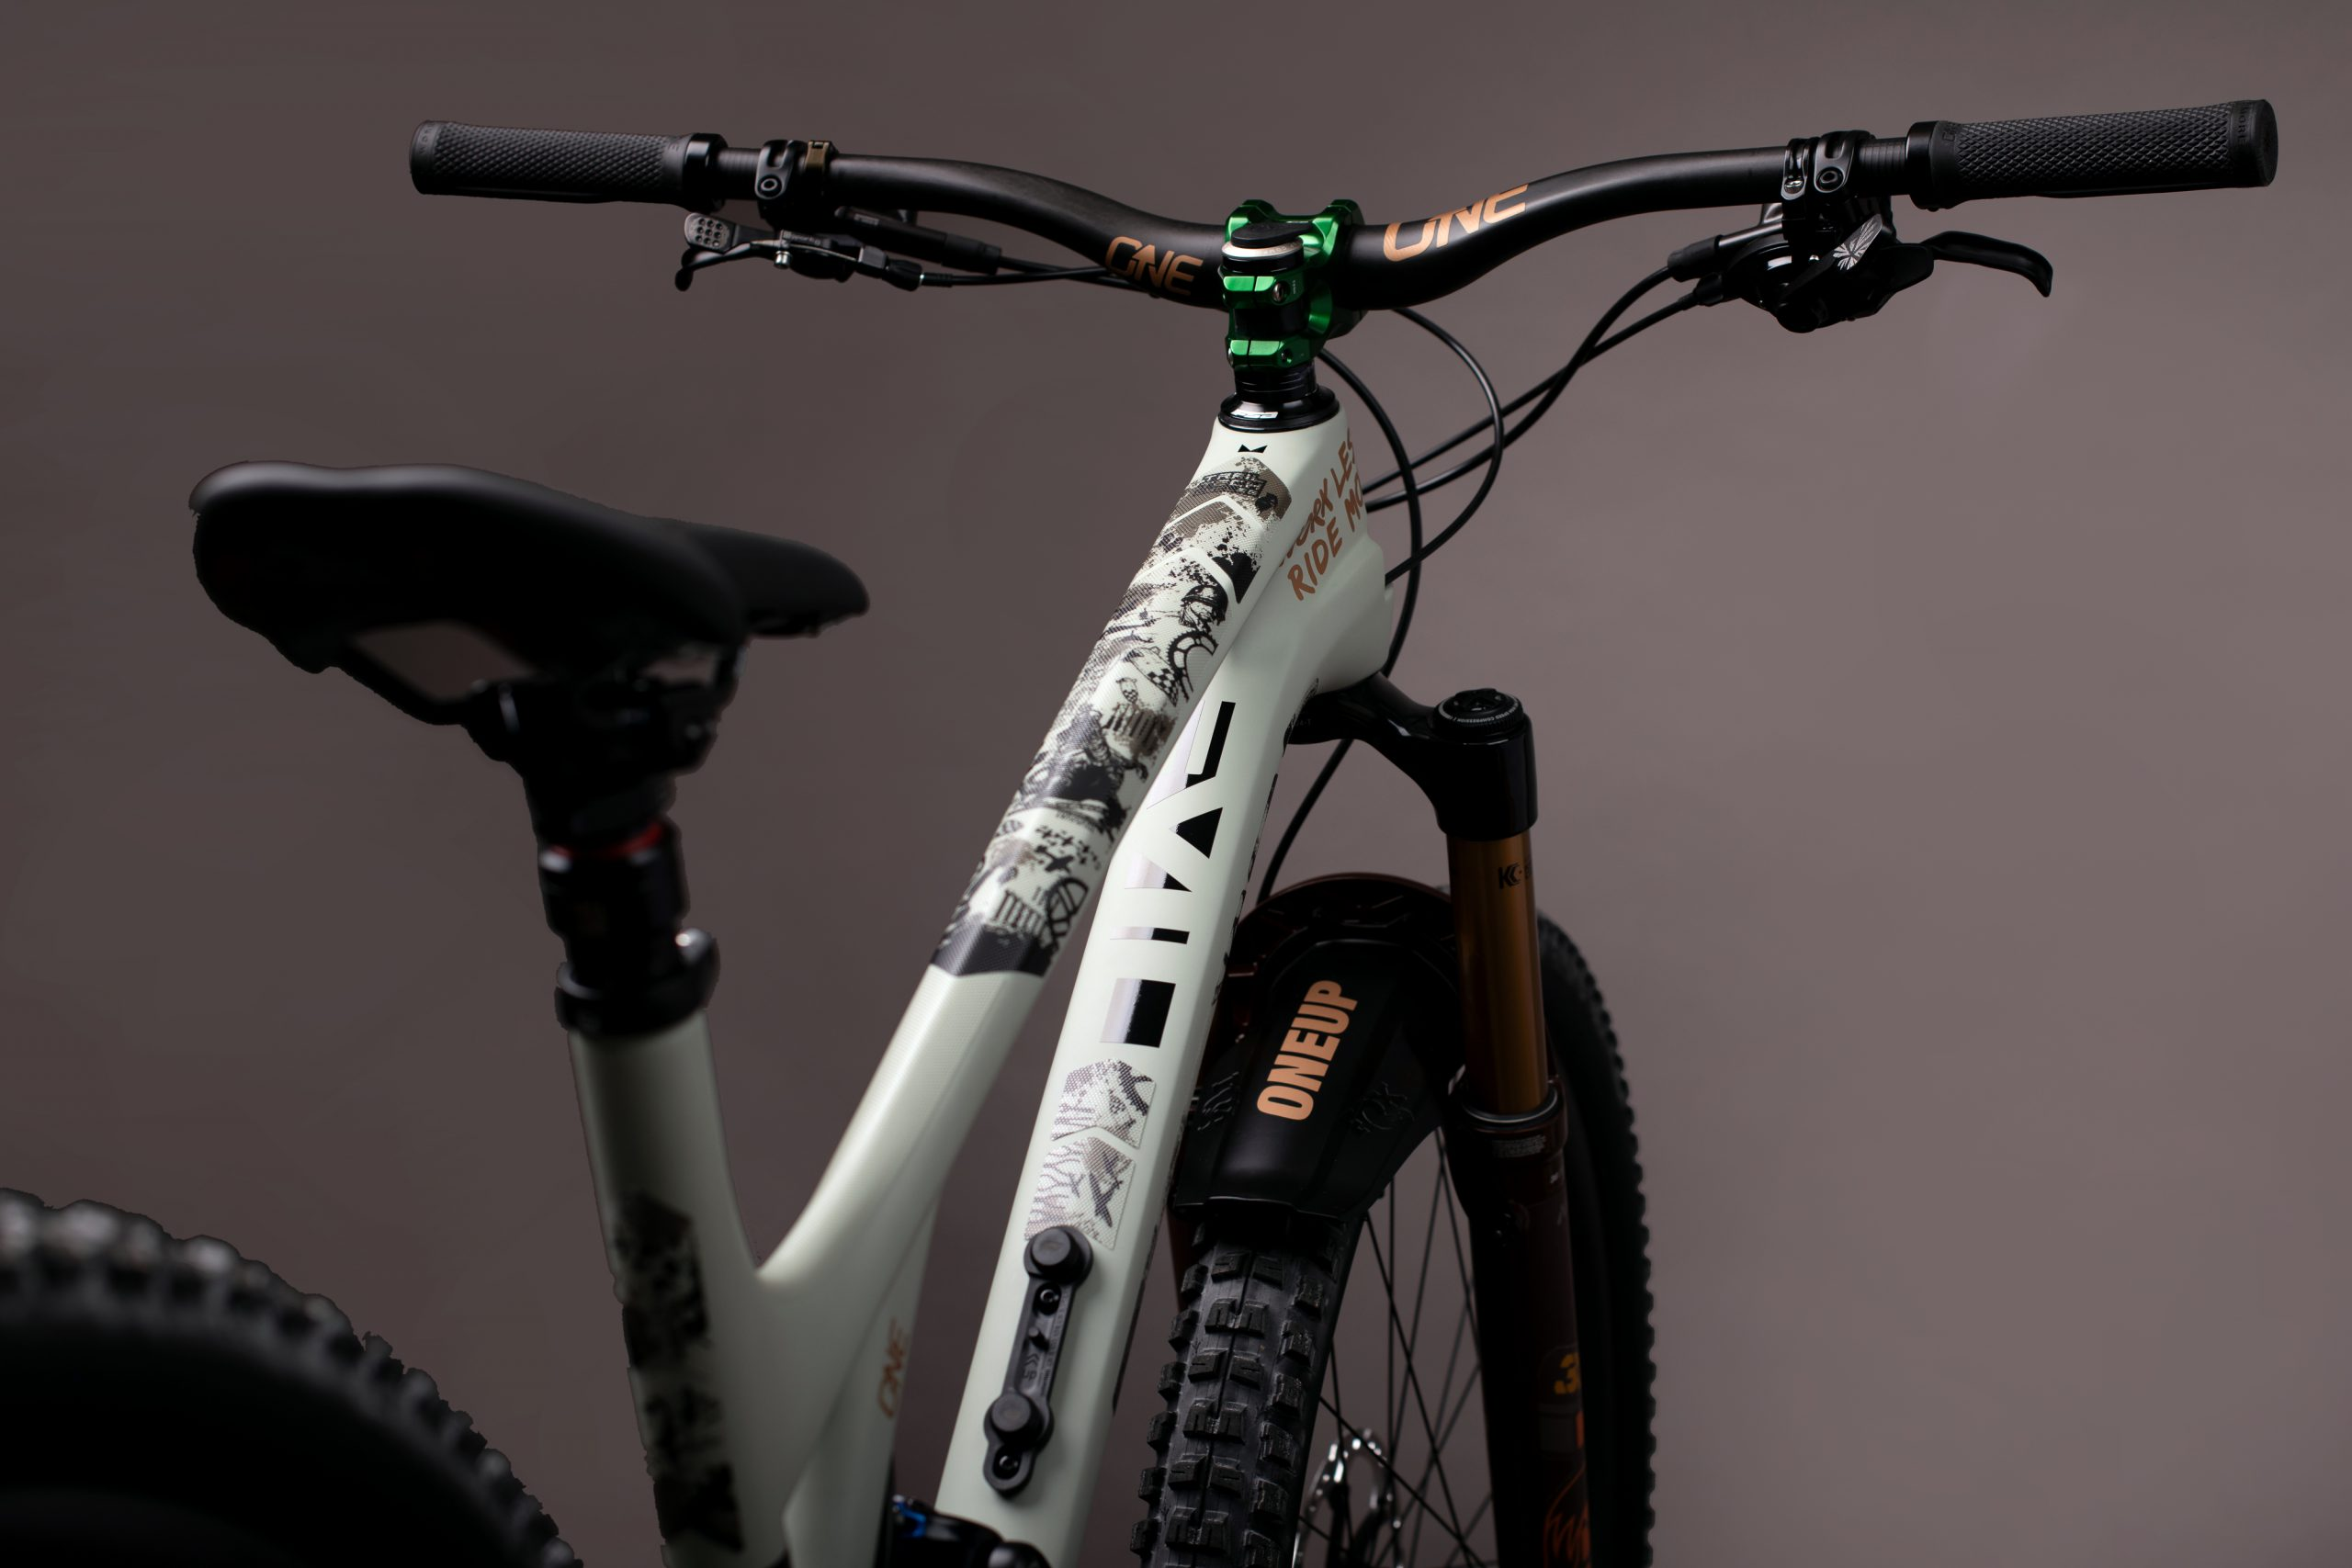 Product Photography in studio with Trail Tech Cycles. It is always a pleasure to photograph their new builds.